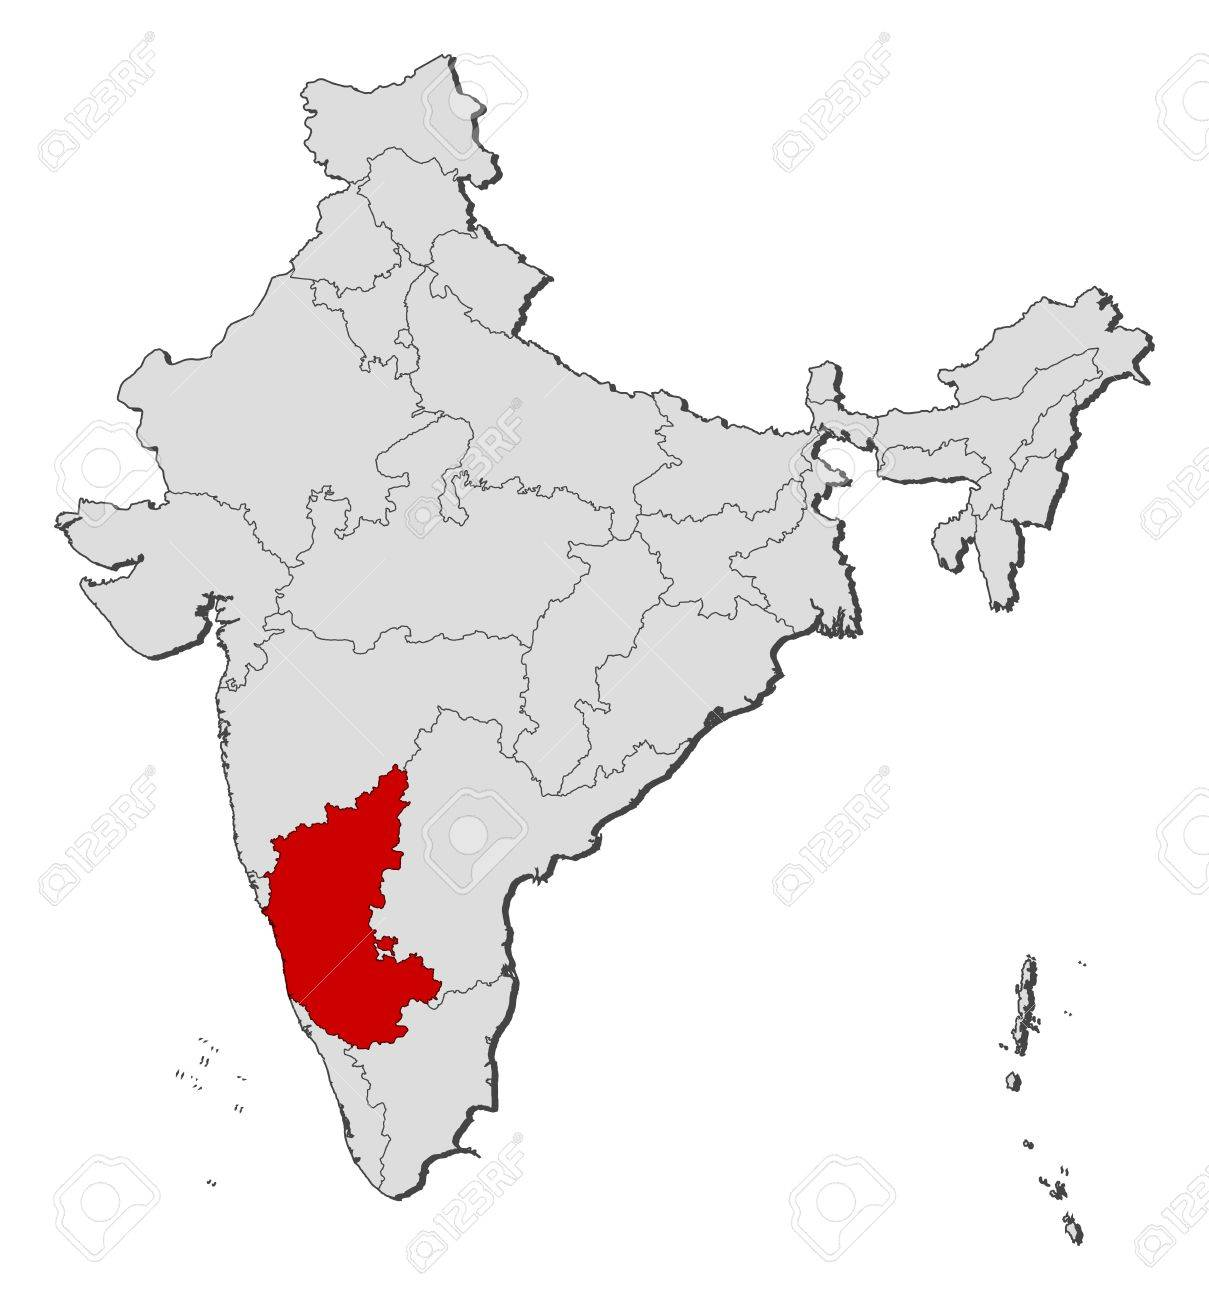 Political Map Of India With The Several States Where Karnataka ...